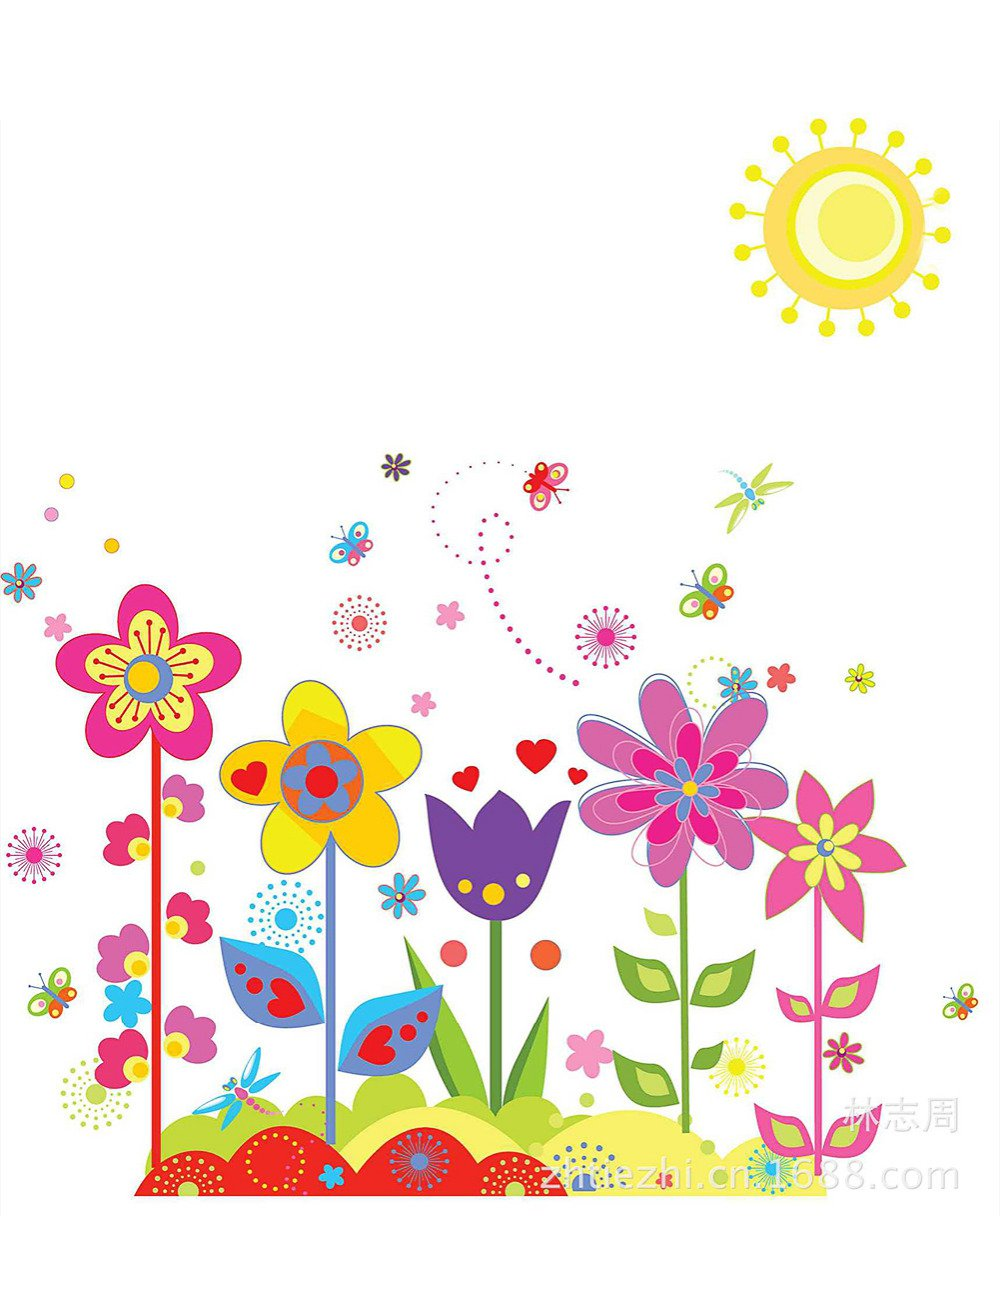 Aliexpress Com   Buy Flower And Flower Removable Wall Stickers For